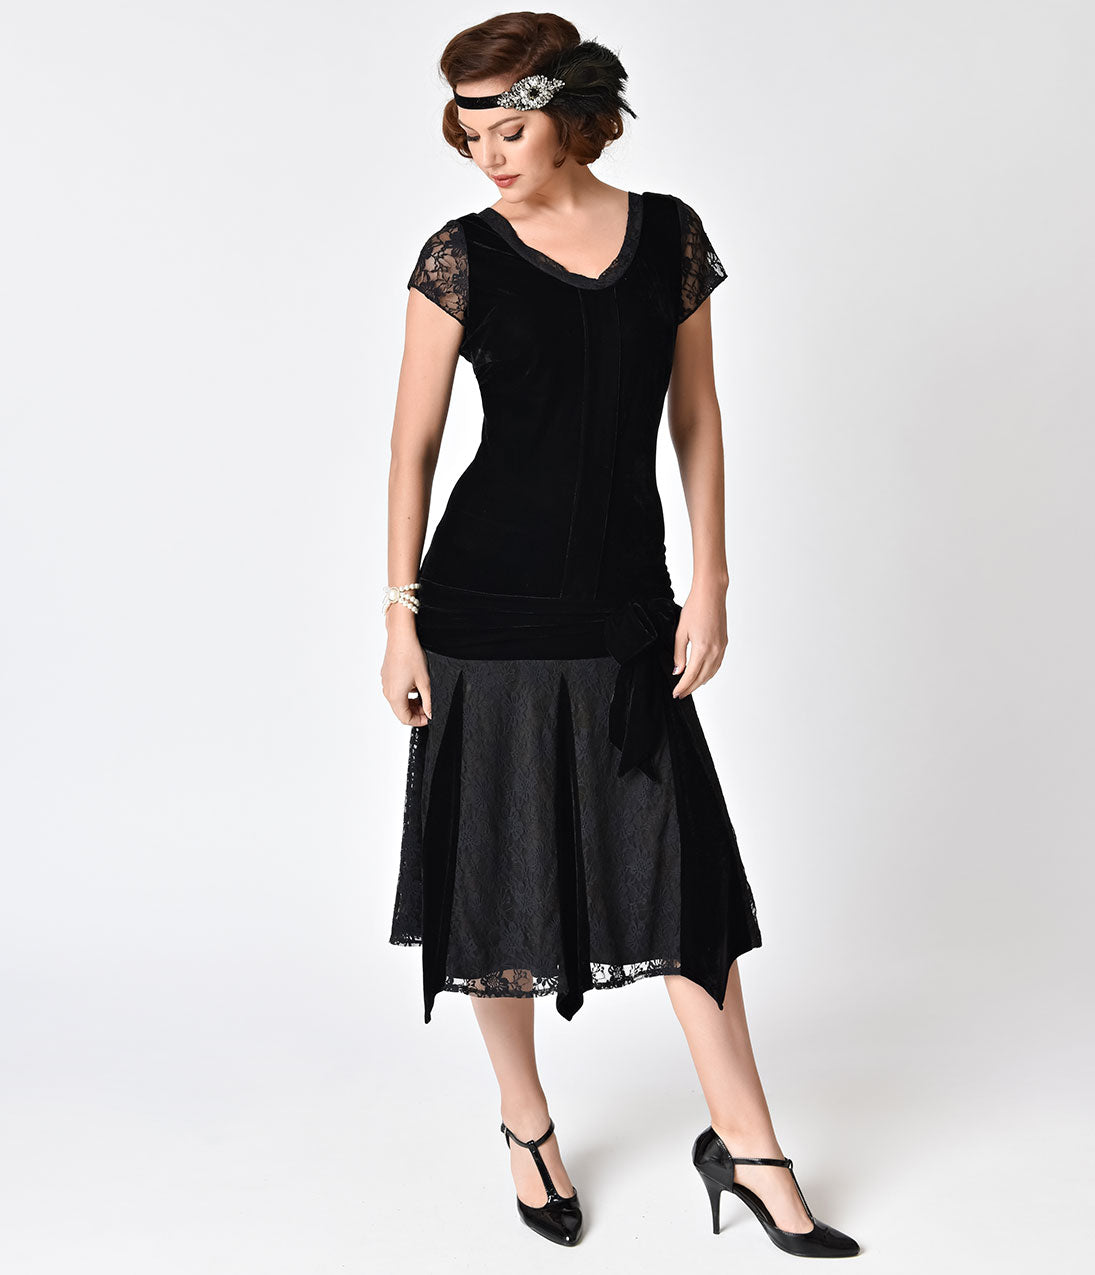 Roaring 20s Costumes- Flapper Costumes, Gangster Costumes Velvet Short Sleeve Millie Flapper Dress $71.00 AT vintagedancer.com